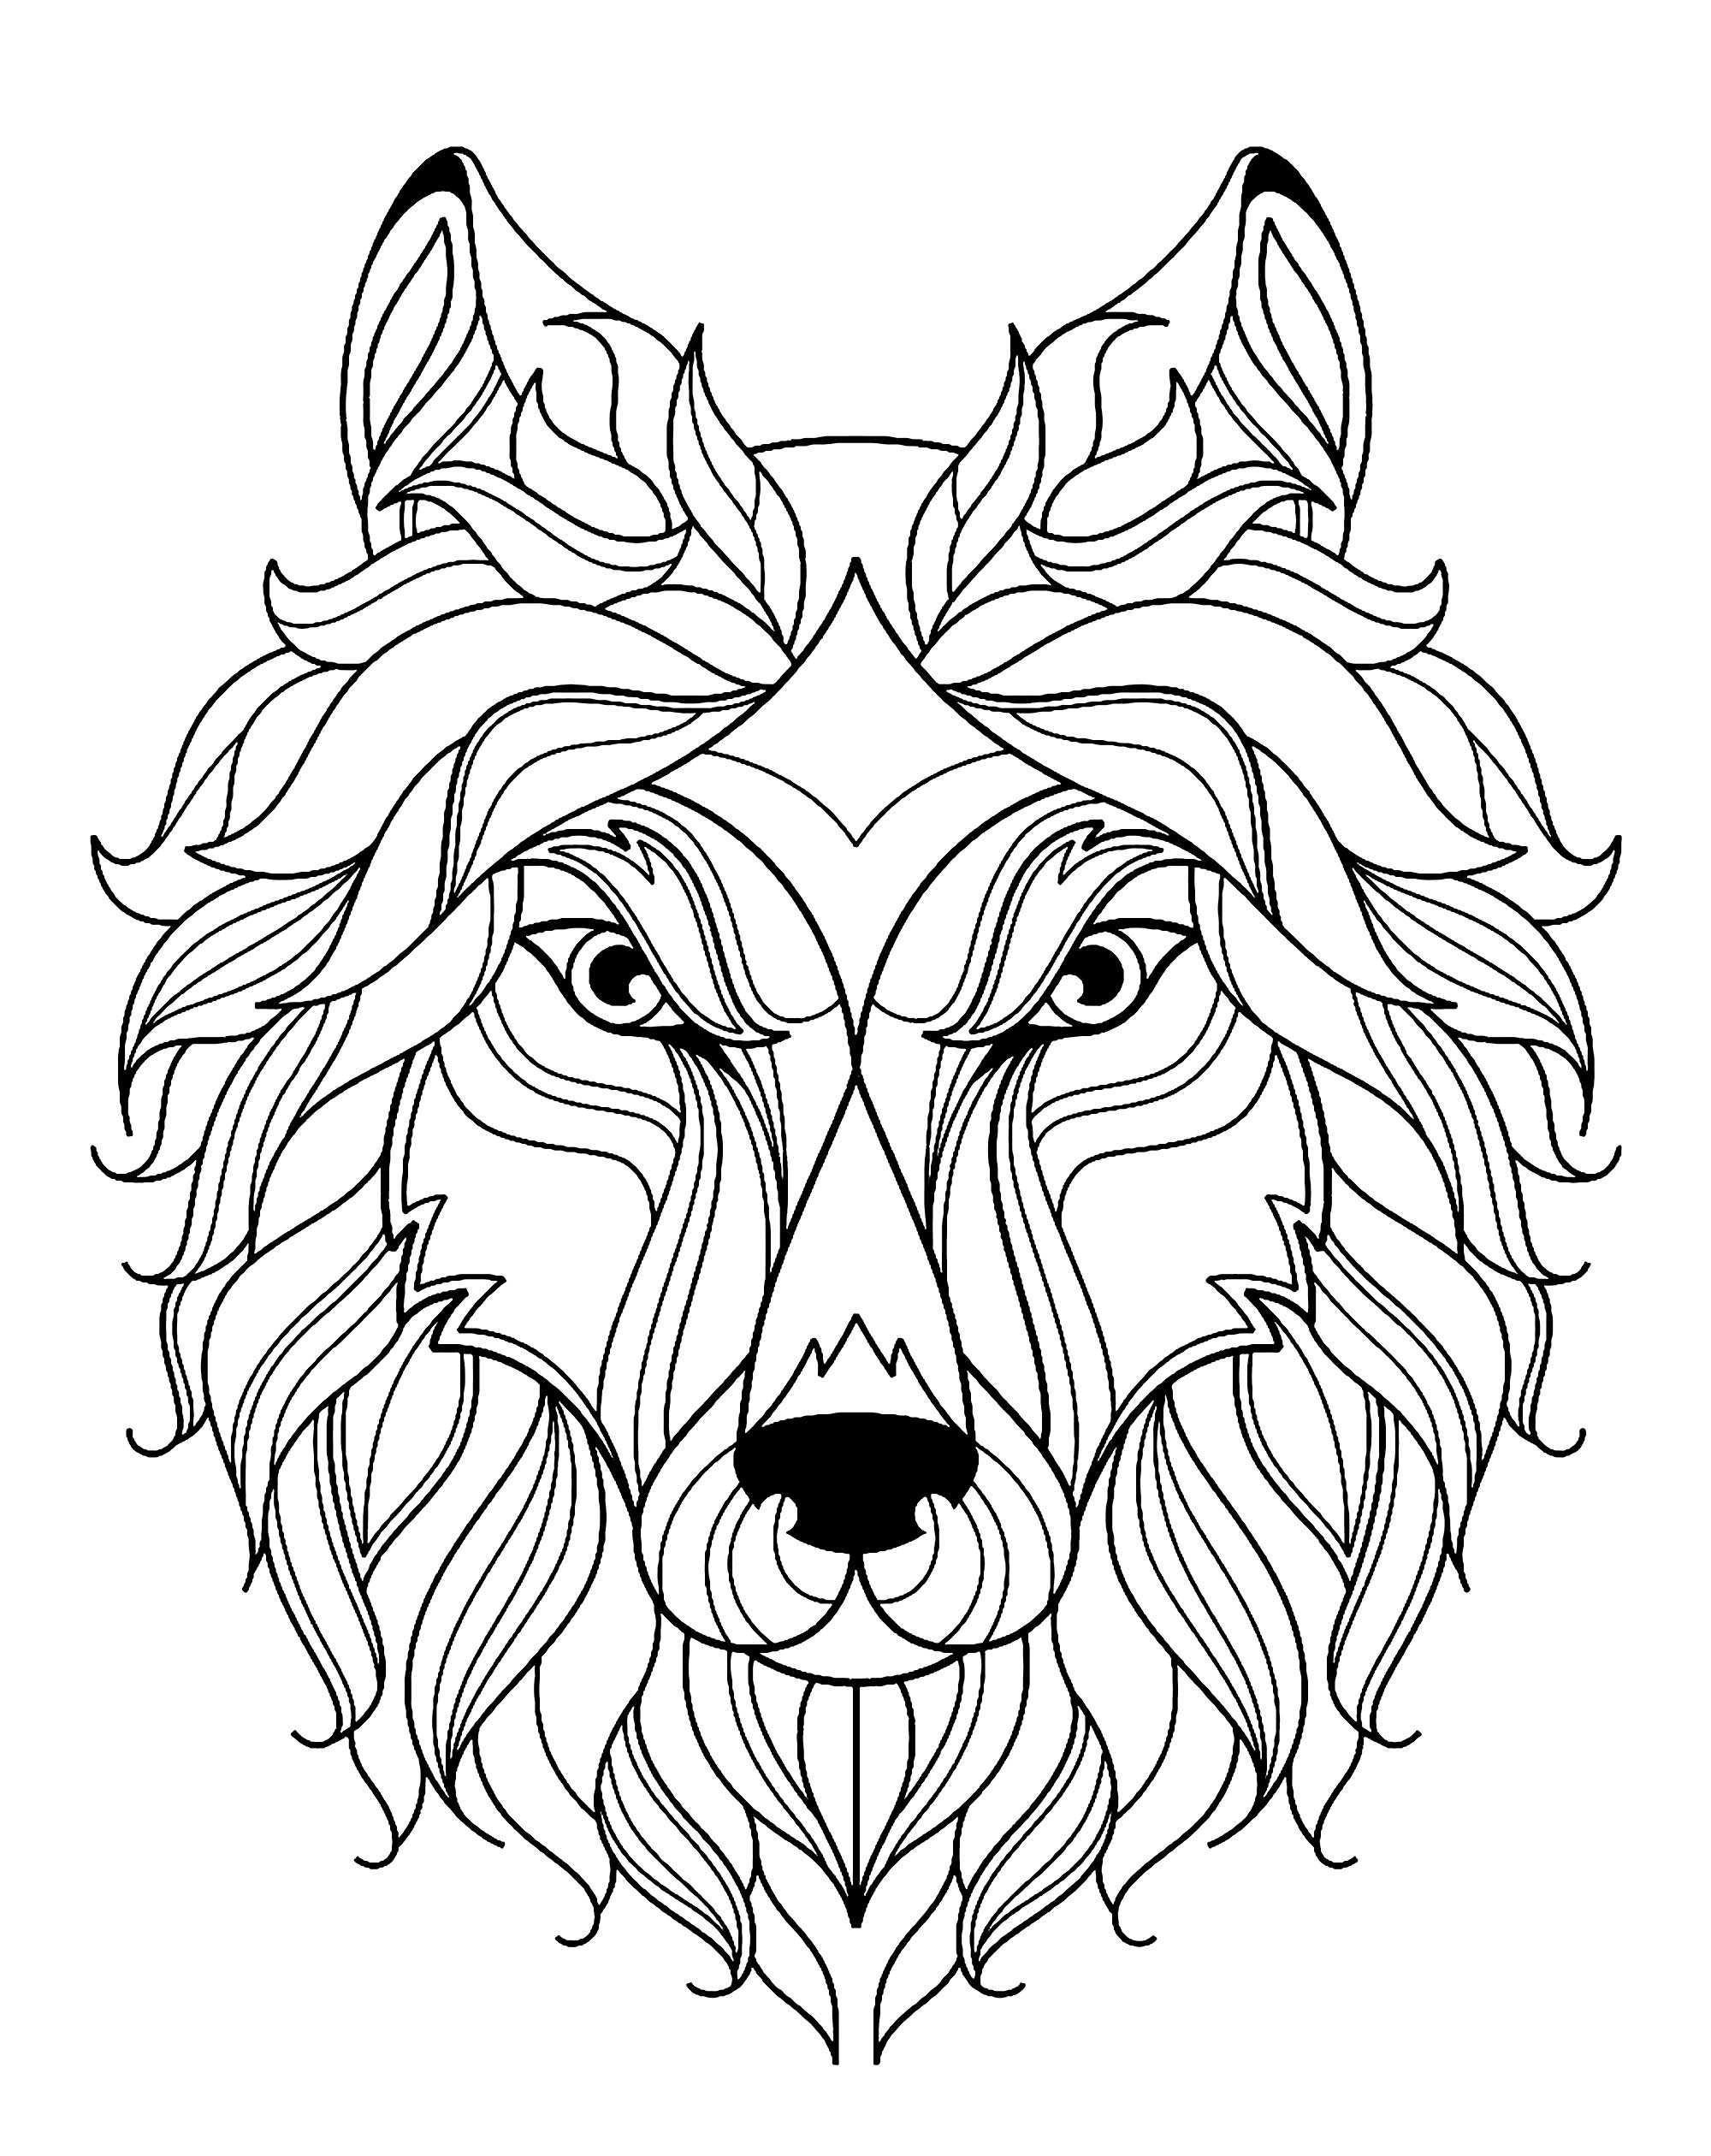 wolf coloring pages for adults wolf coloring pages for adults best coloring pages for kids pages wolf coloring adults for